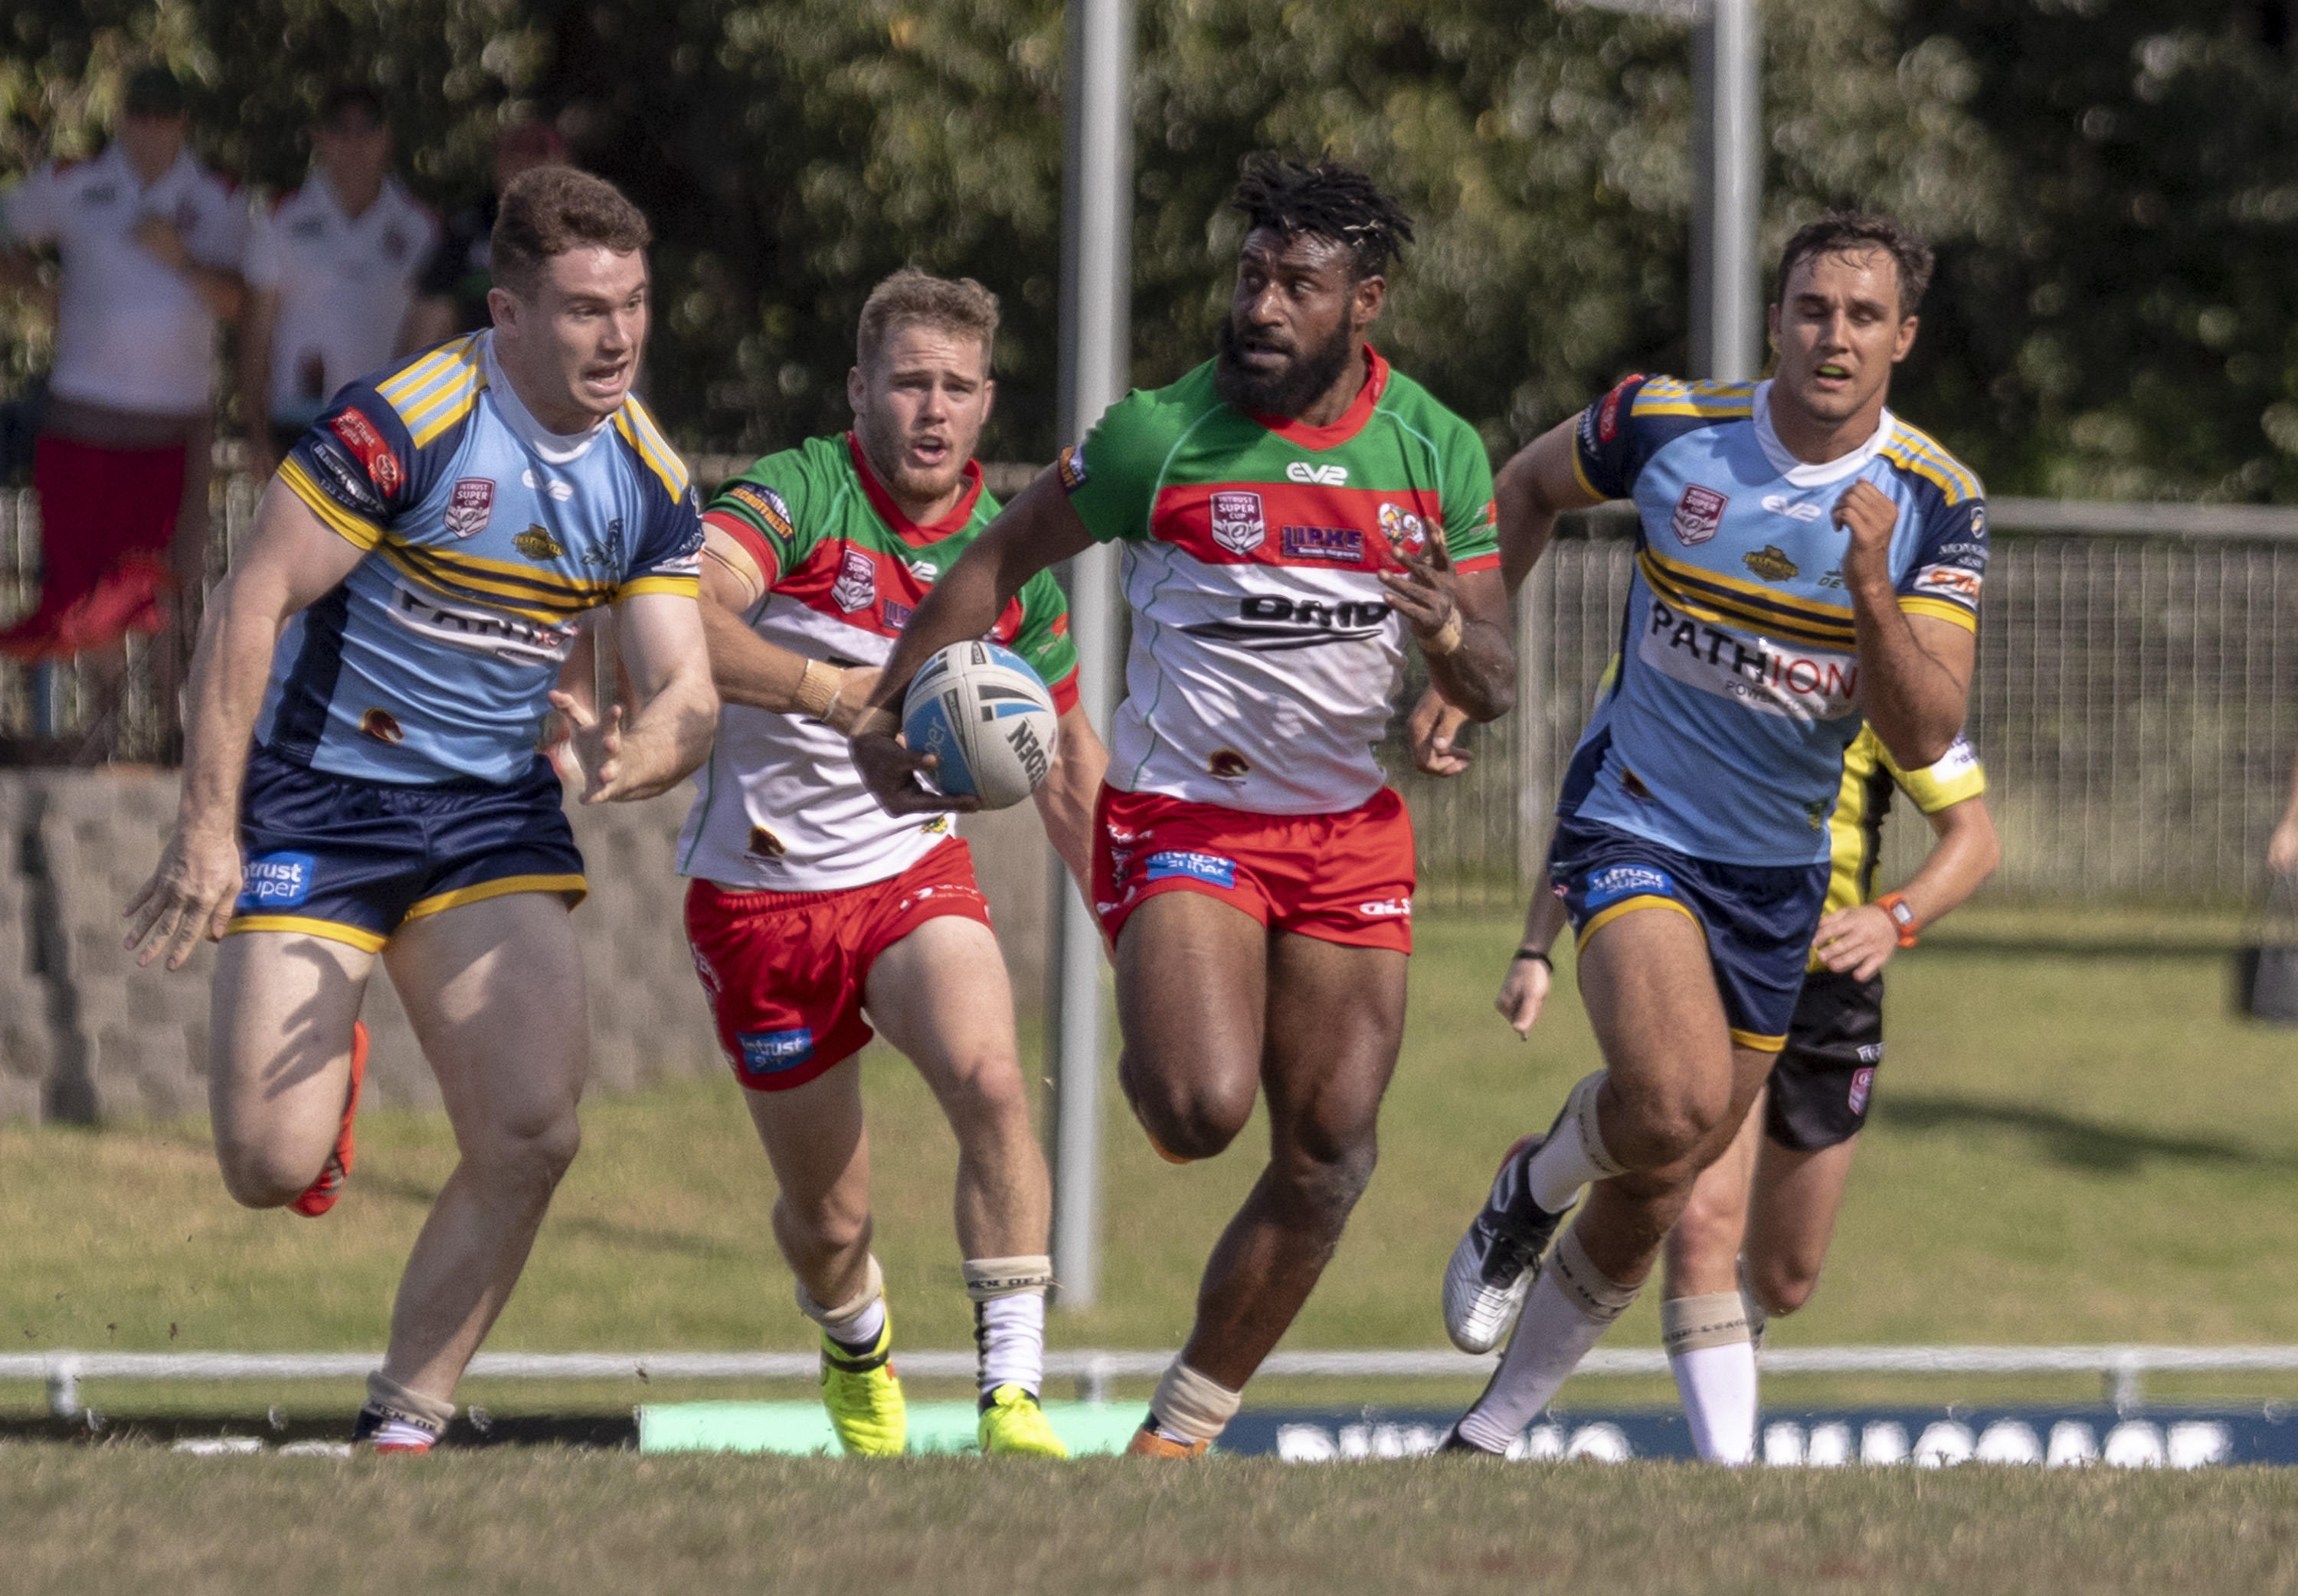 Seagulls show their scoring skills in big win over PNG